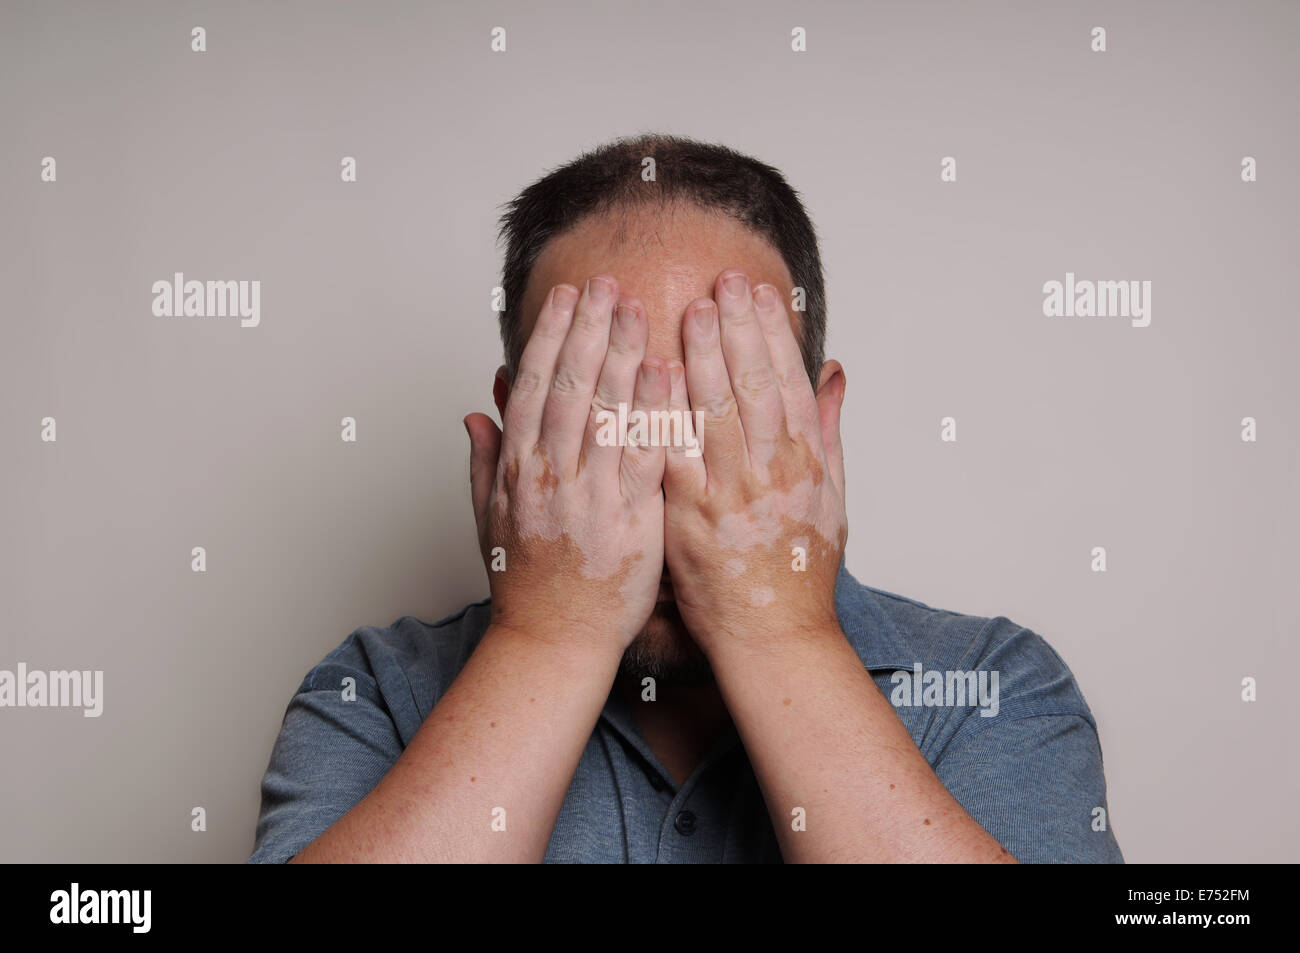 man with Vitiligo hiding face - Stock Image